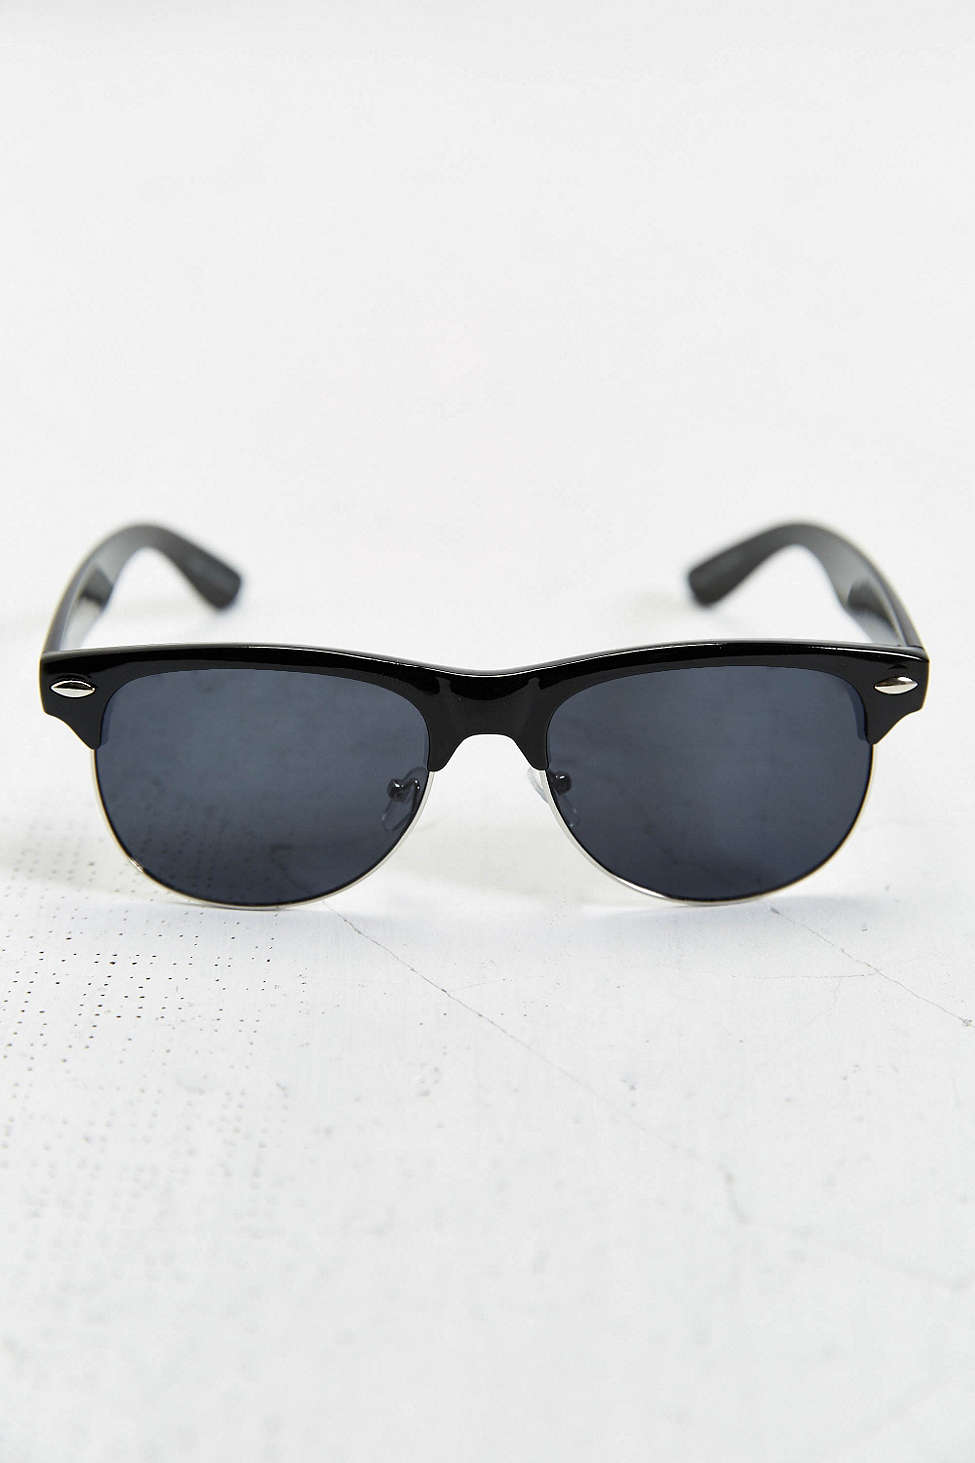 Glasses Frames Urban Outfitters : The Felon Round Half-Frame Sunglasses - Urban Outfitters ...